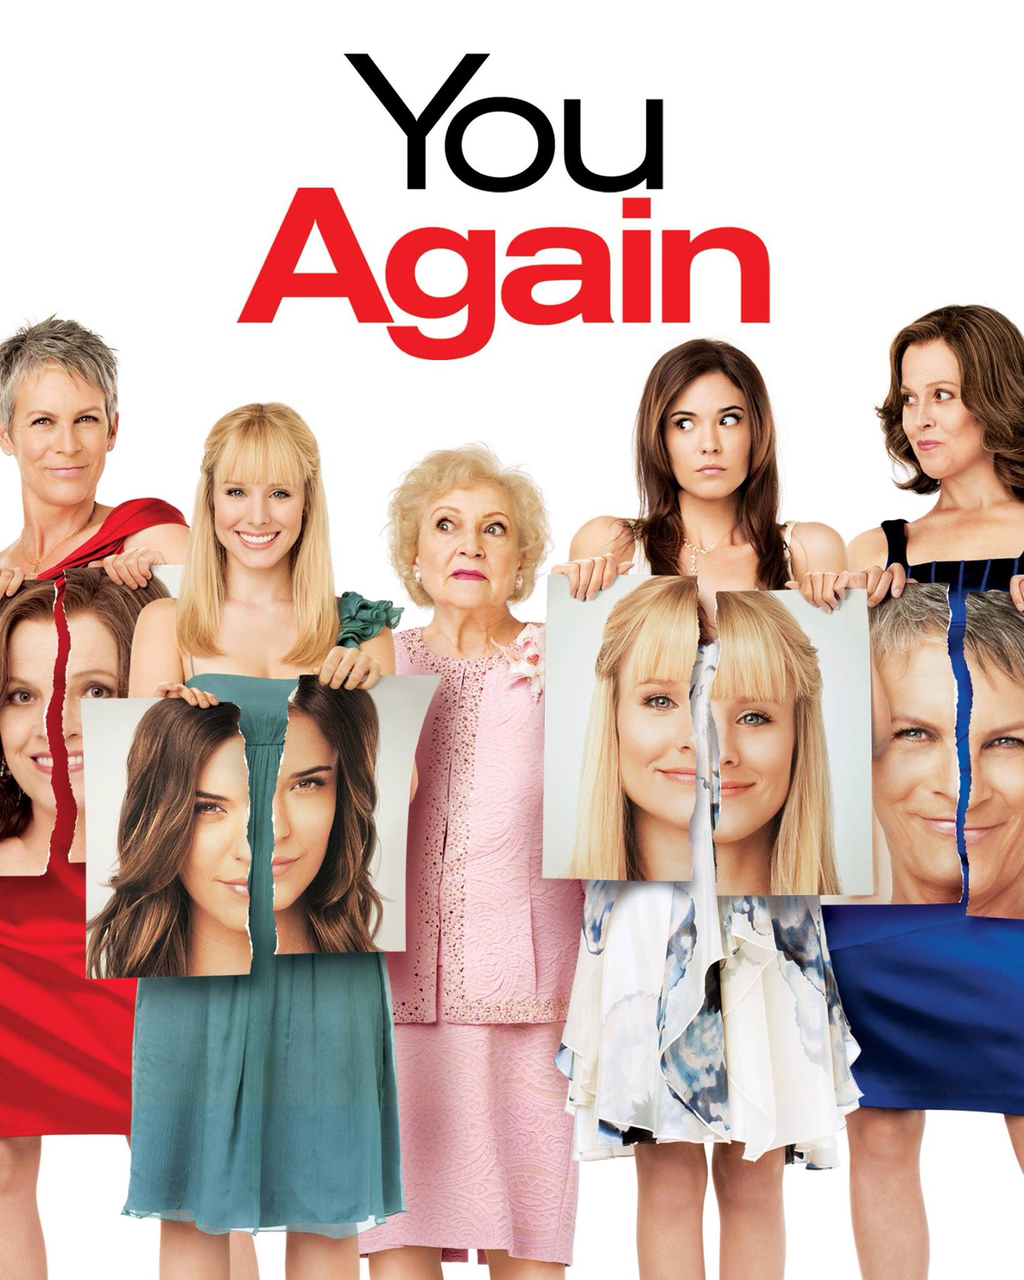 movie and you again image